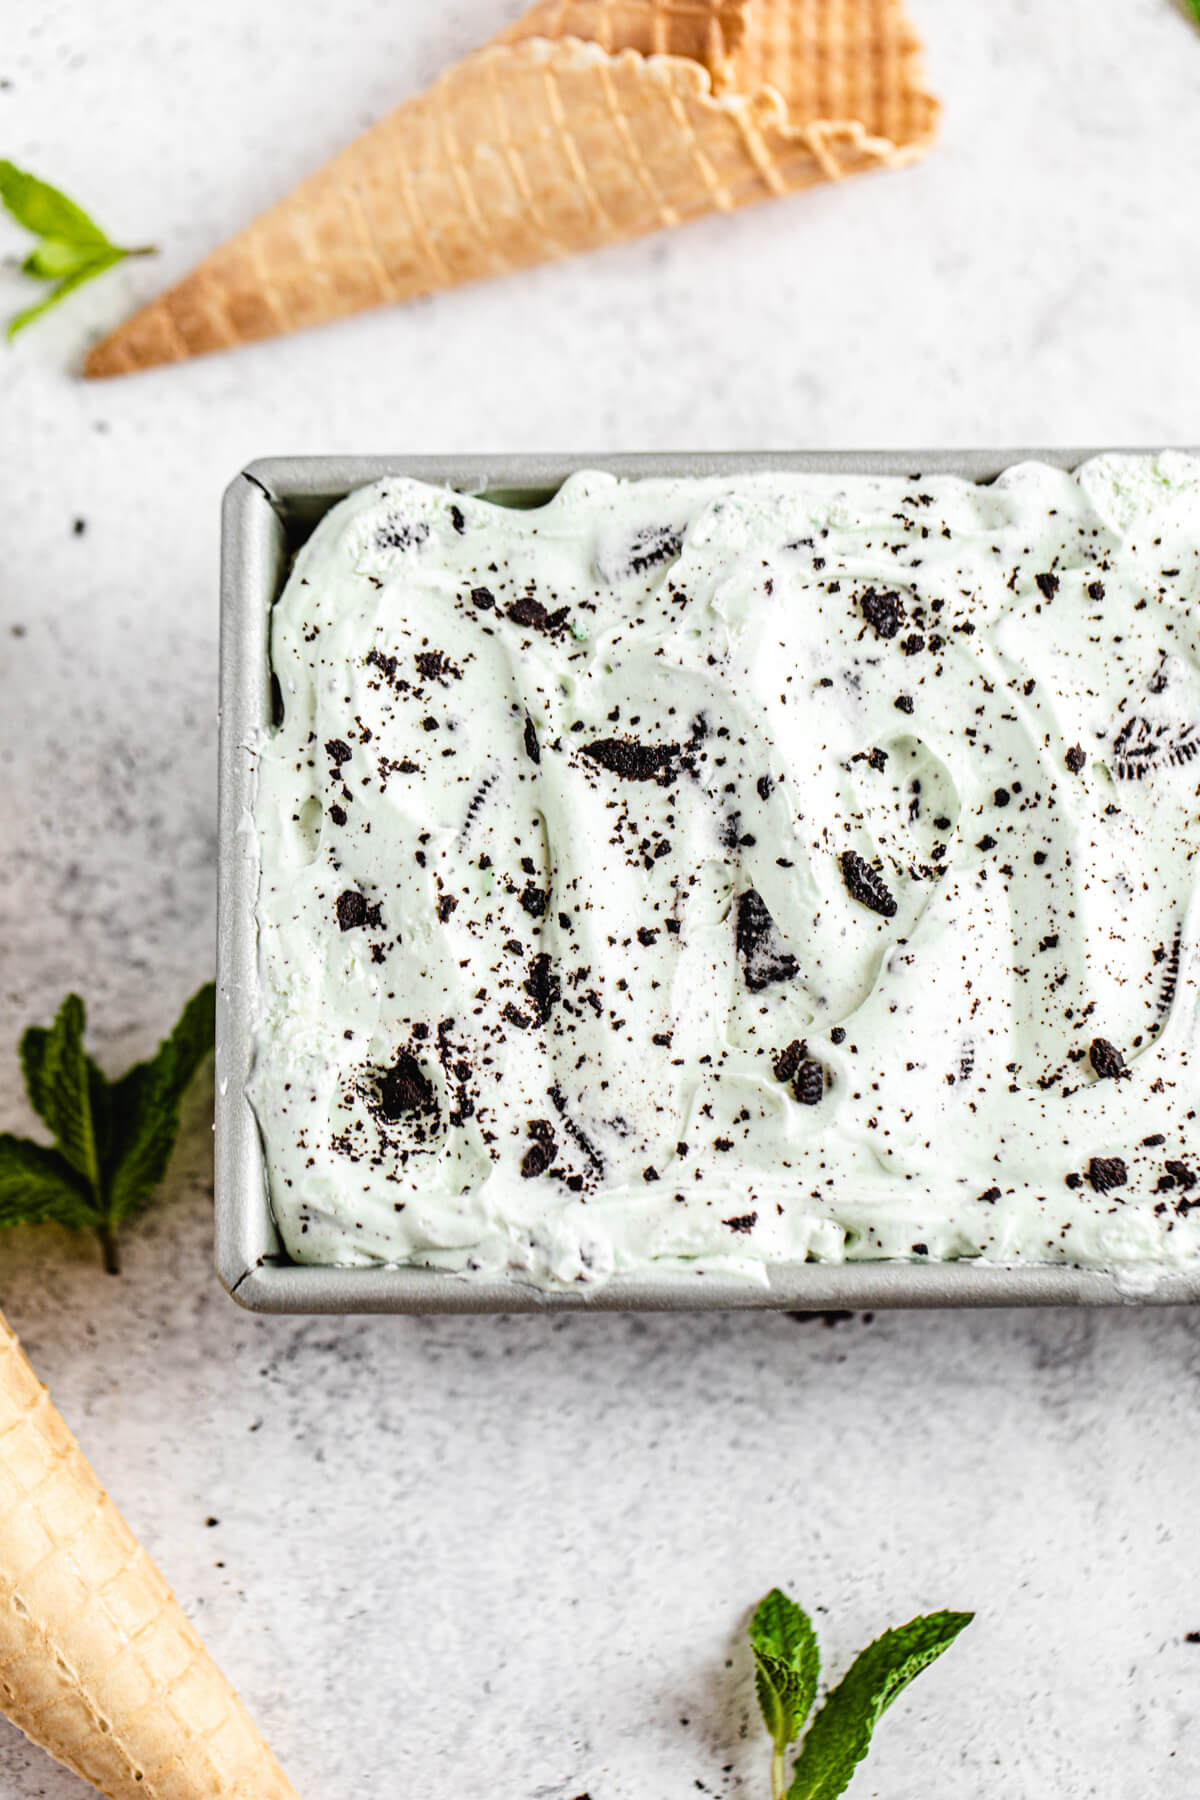 ice cream in a loaf pan with mint leaves and waffle cones around it